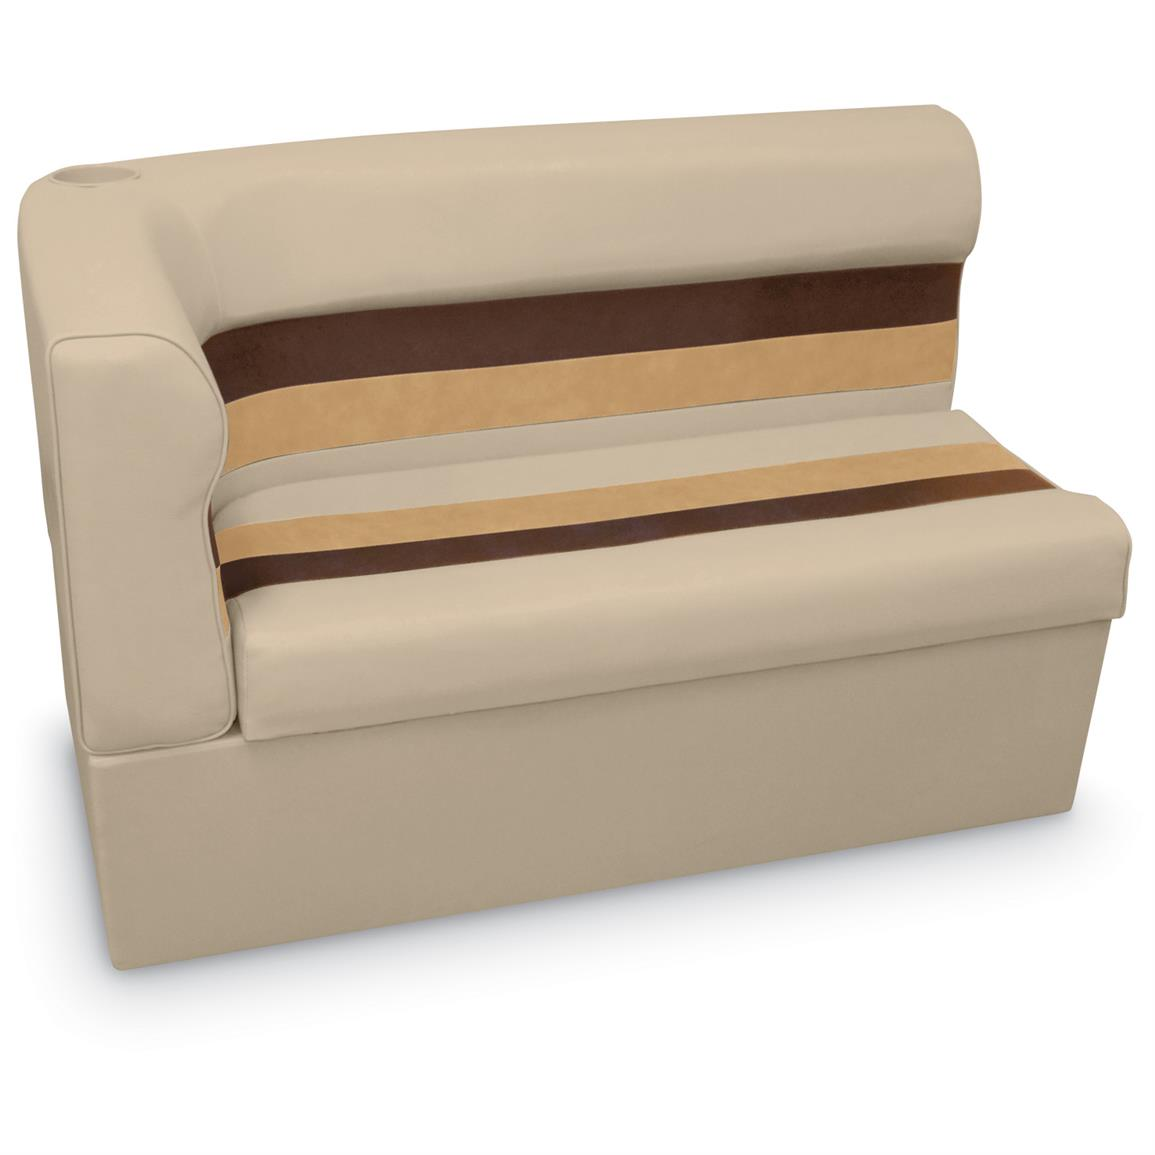 "Wise Long Corner Couch Pontoon Seat, 45"" Radius Right, Sand / Chestnut Gold, Color H"